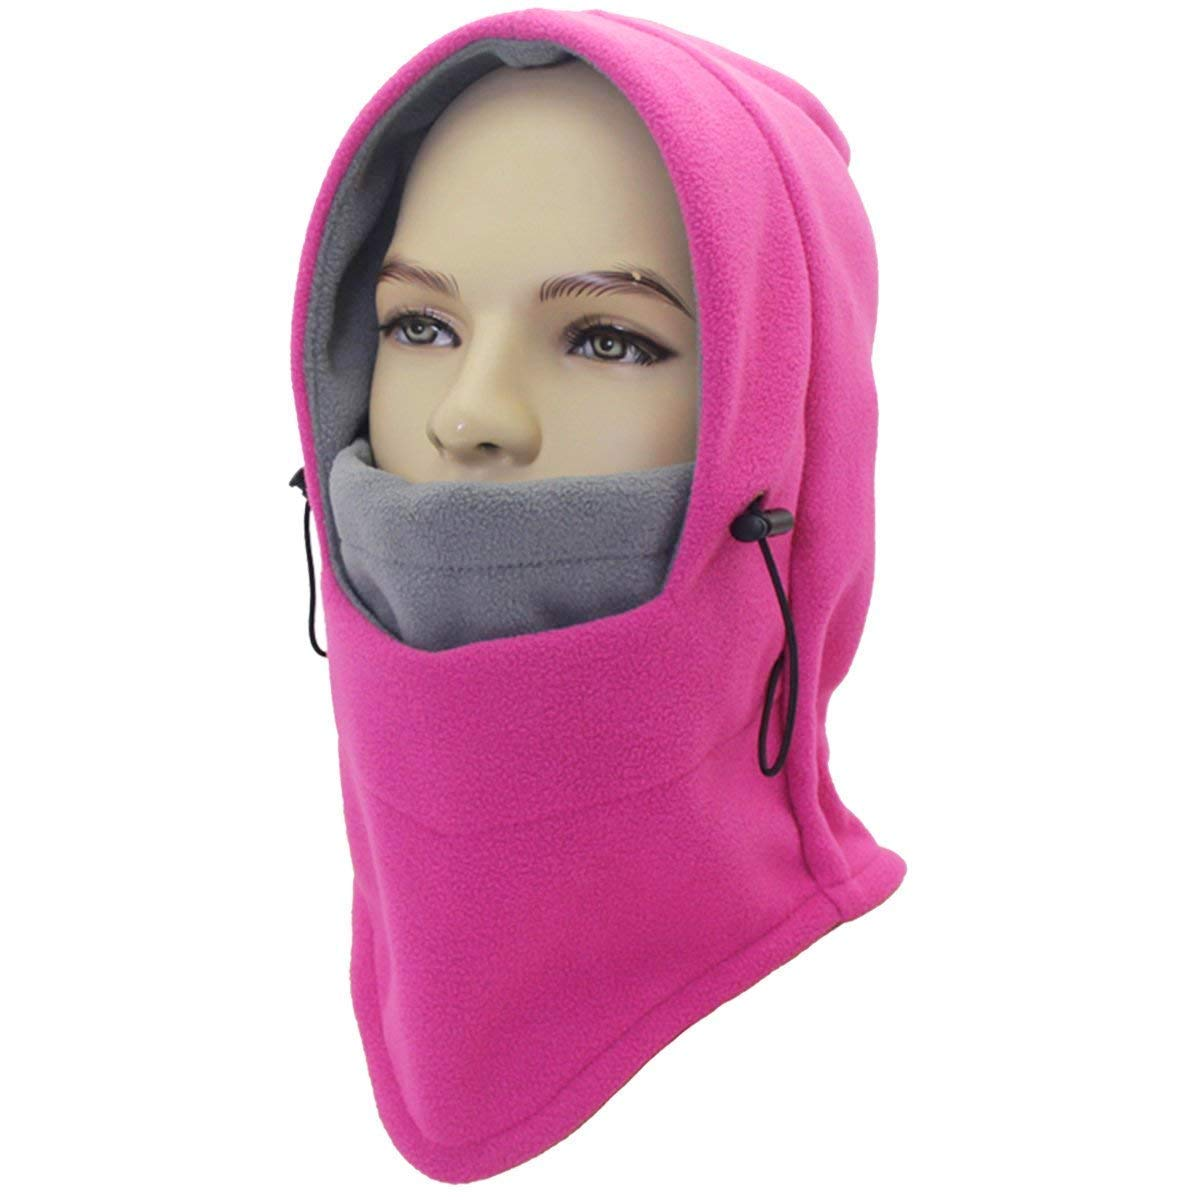 0f960e6895bb6 Best Rated in Women s Balaclavas   Helpful Customer Reviews - Amazon.com